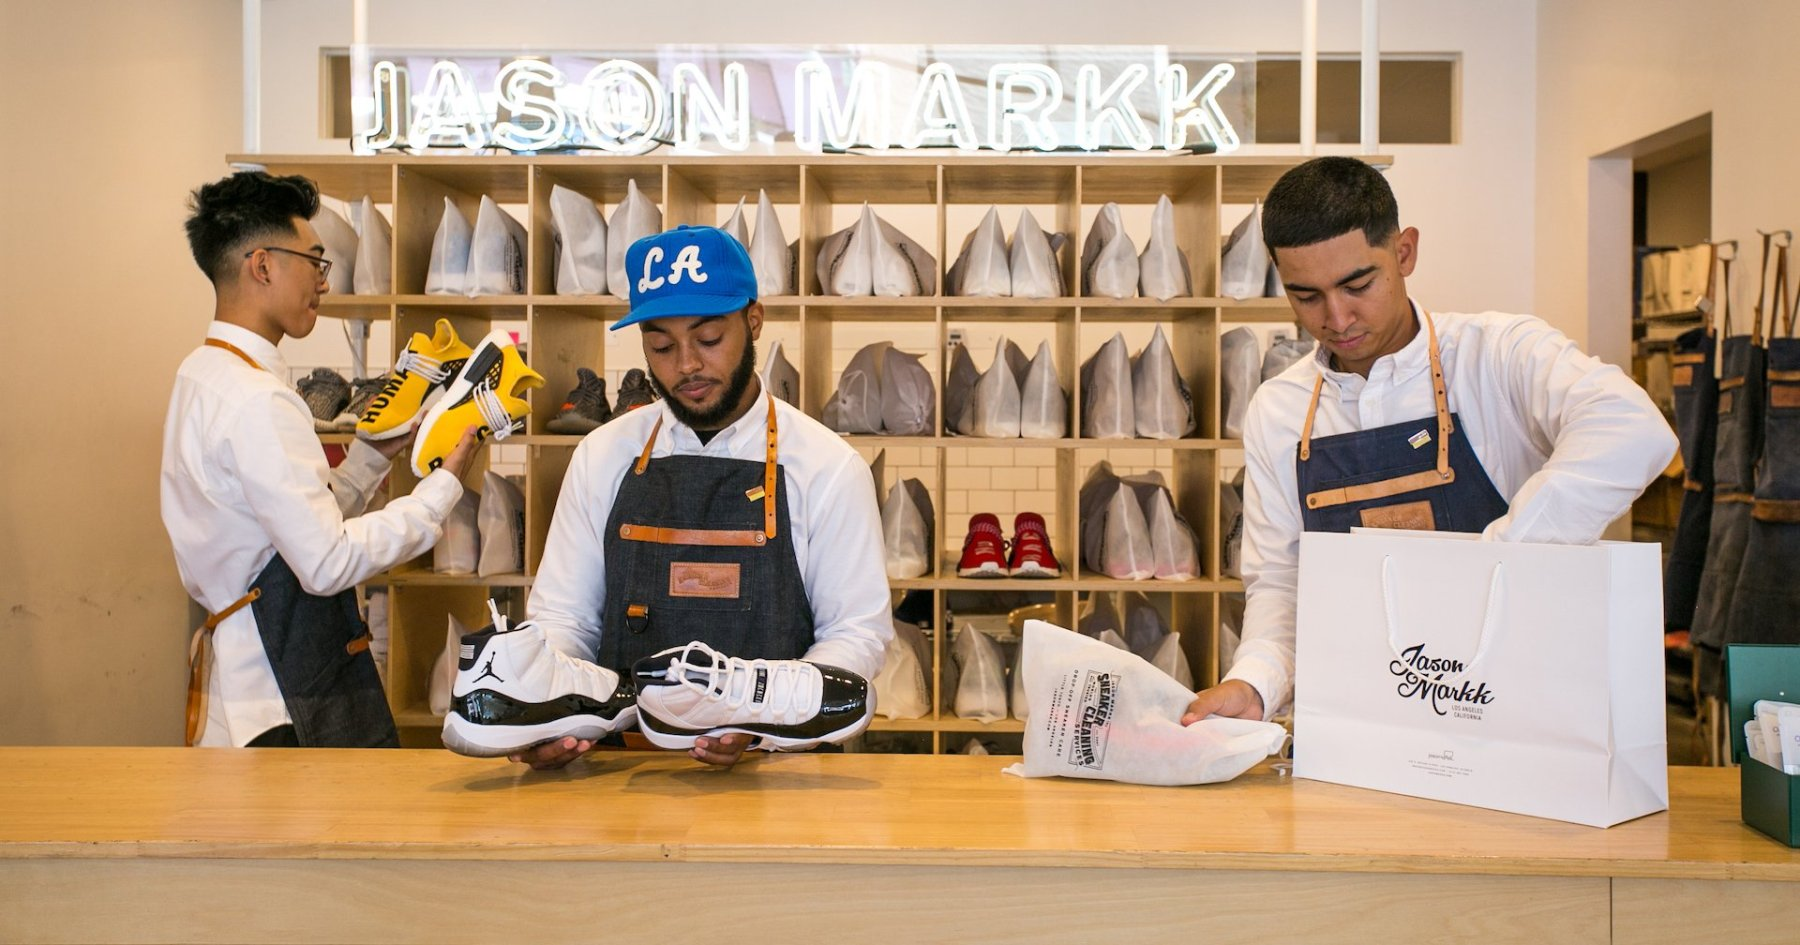 Jason Markk Names the 5 Best Sneaker Shops in LA